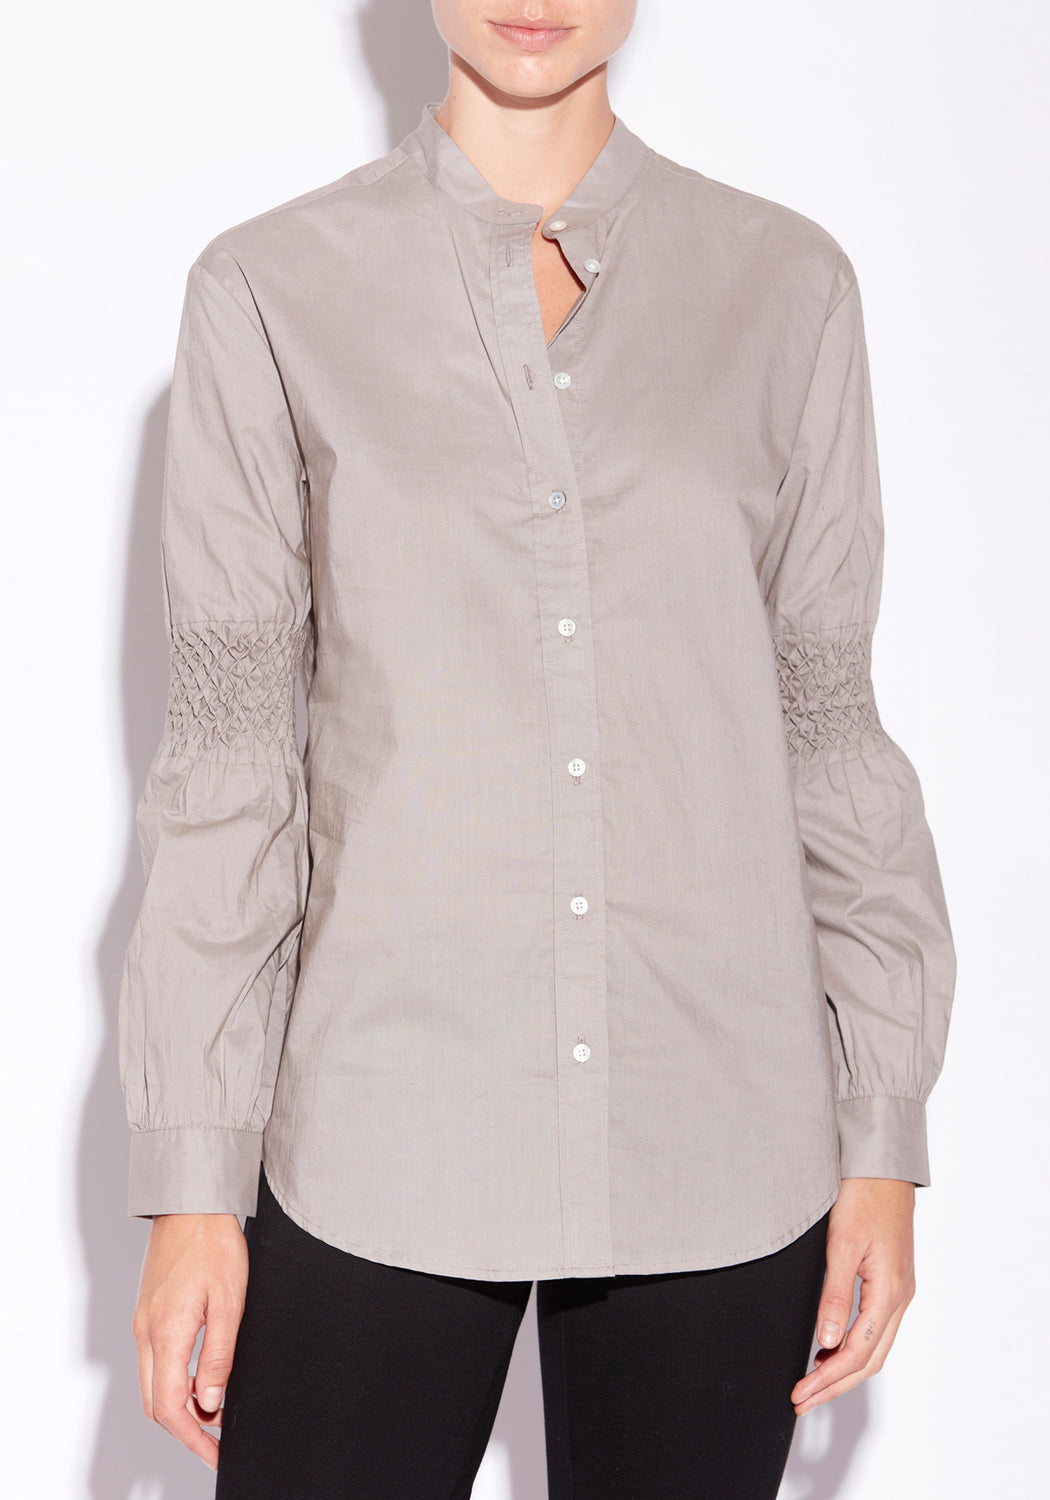 Quartz Smocked Shirt  - SILVER